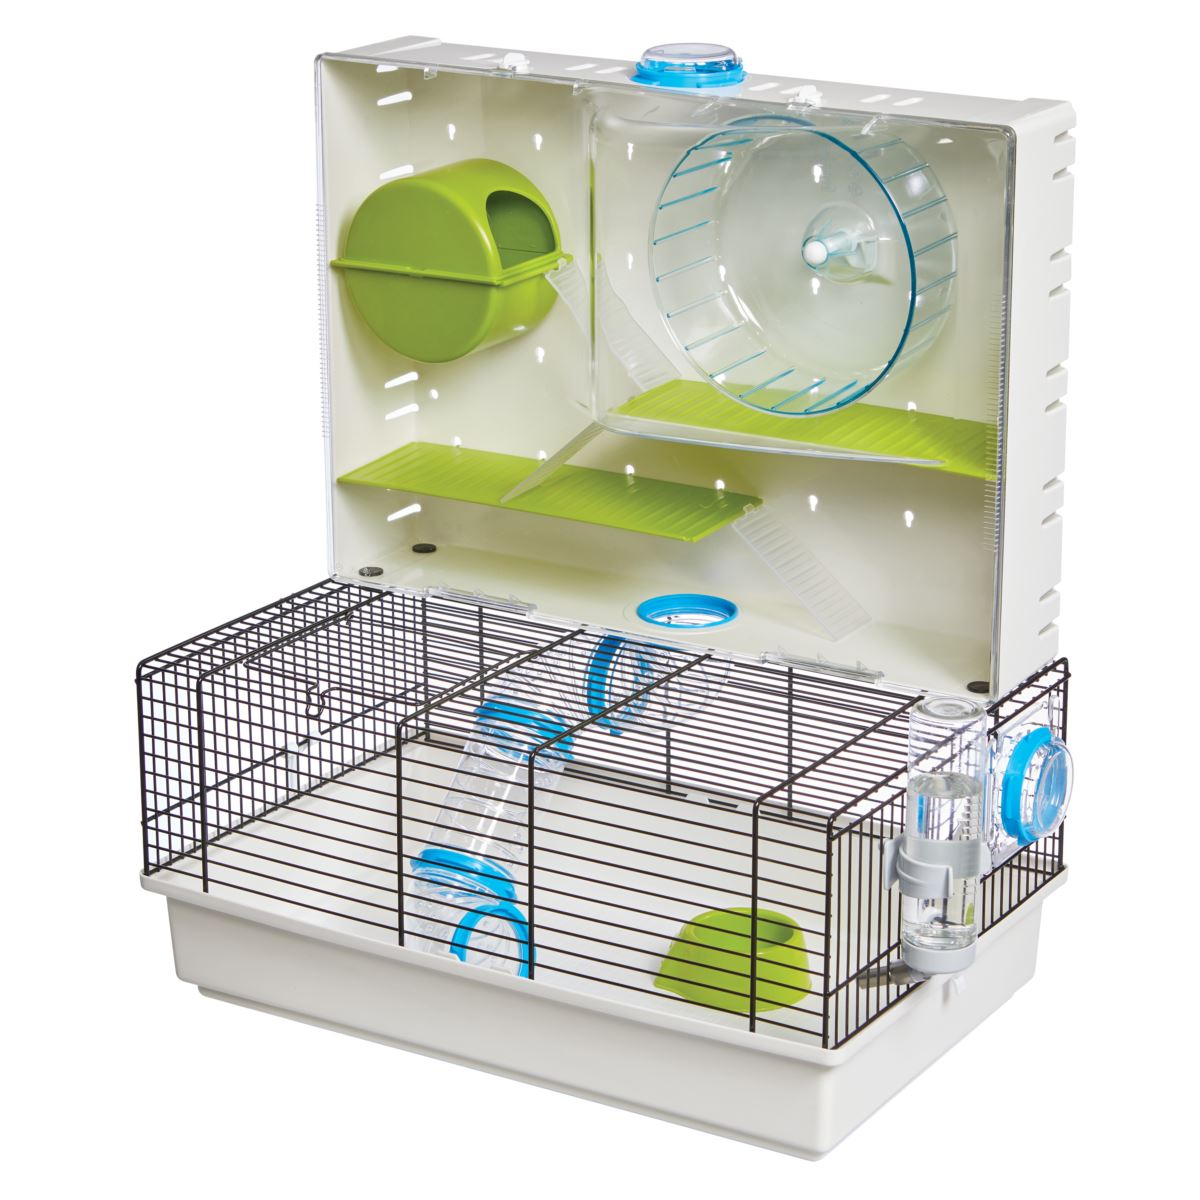 MidWest Pets Critterville Arcade Hamster Cage